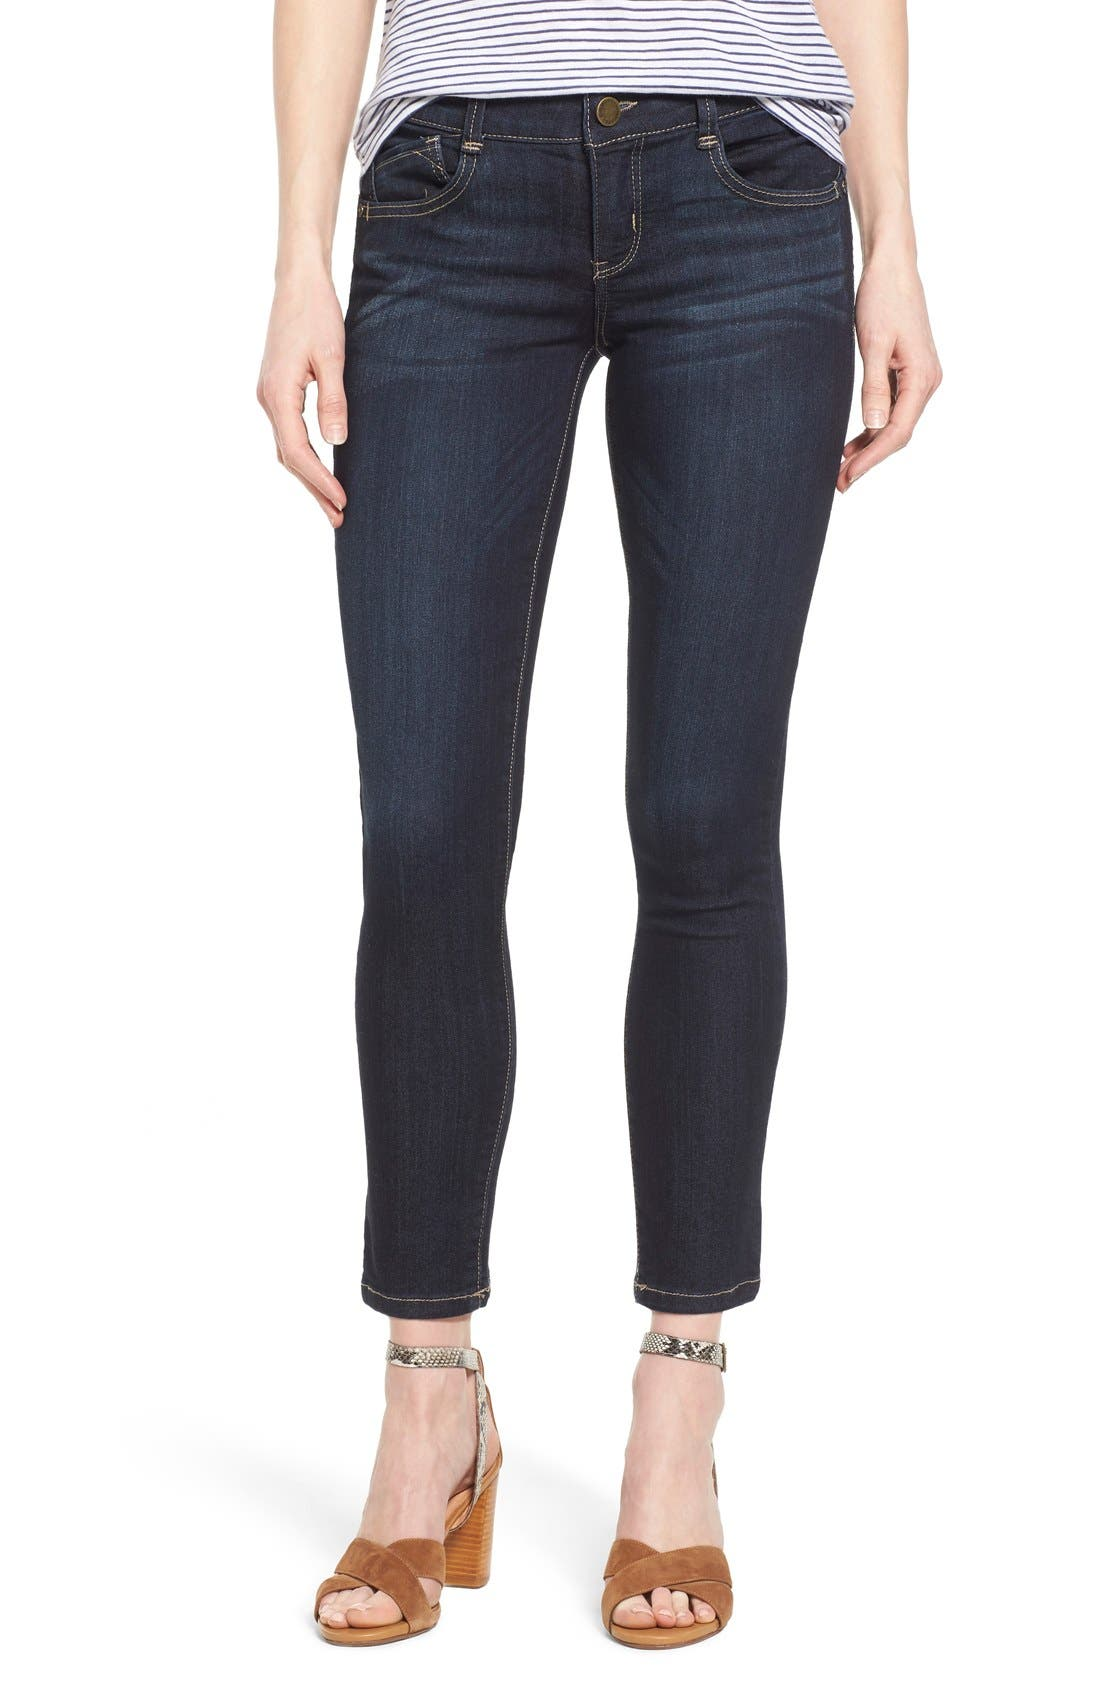 'Ab Solution' Stretch Ankle Skinny Jeans,                         Main,                         color,